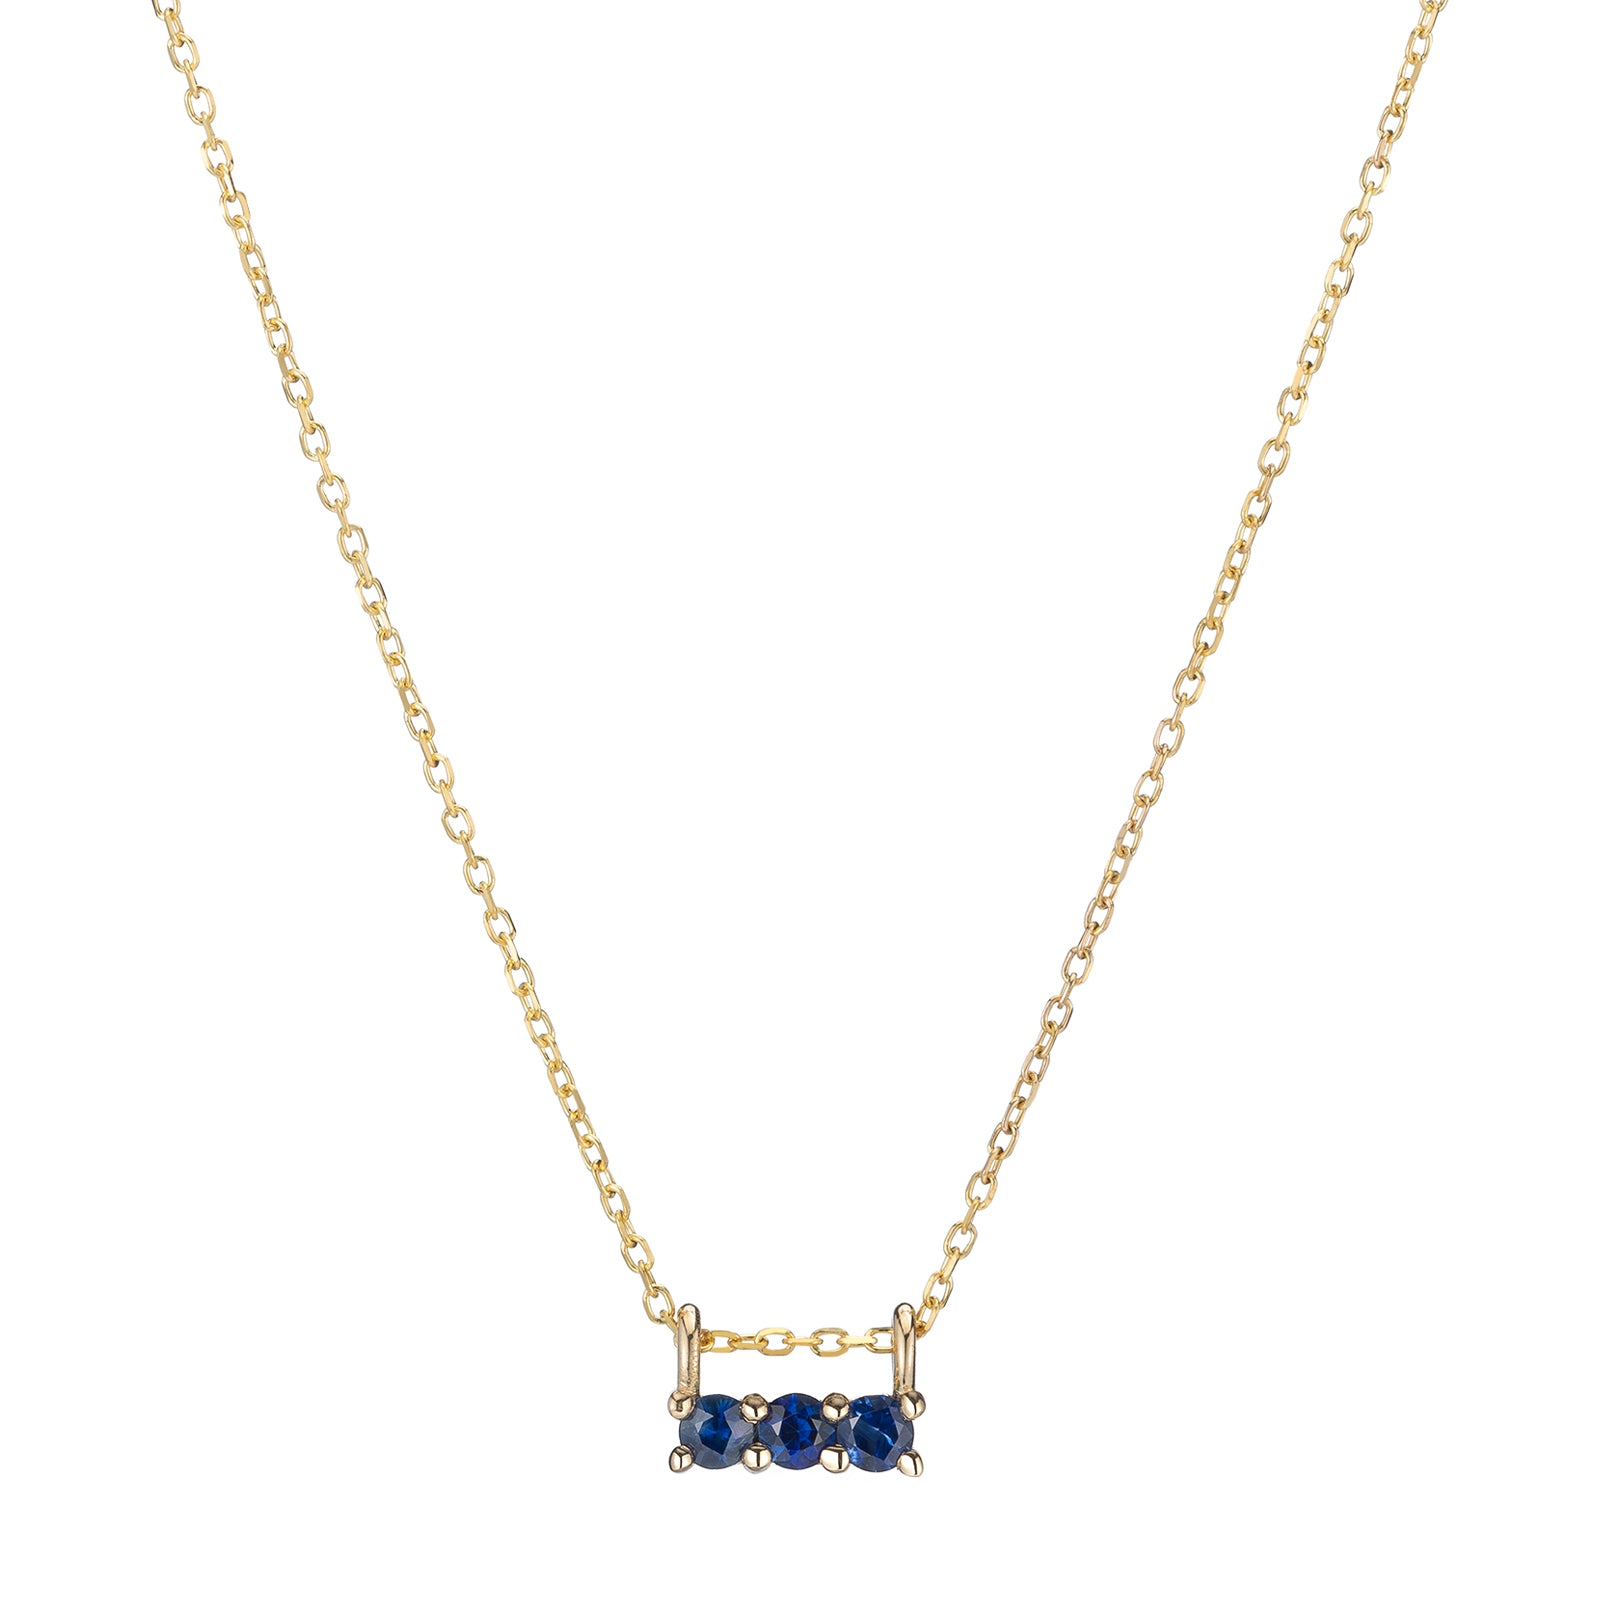 Jennie Kwon Three Stone Necklace - Sapphire - Necklaces - Broken English Jewelry